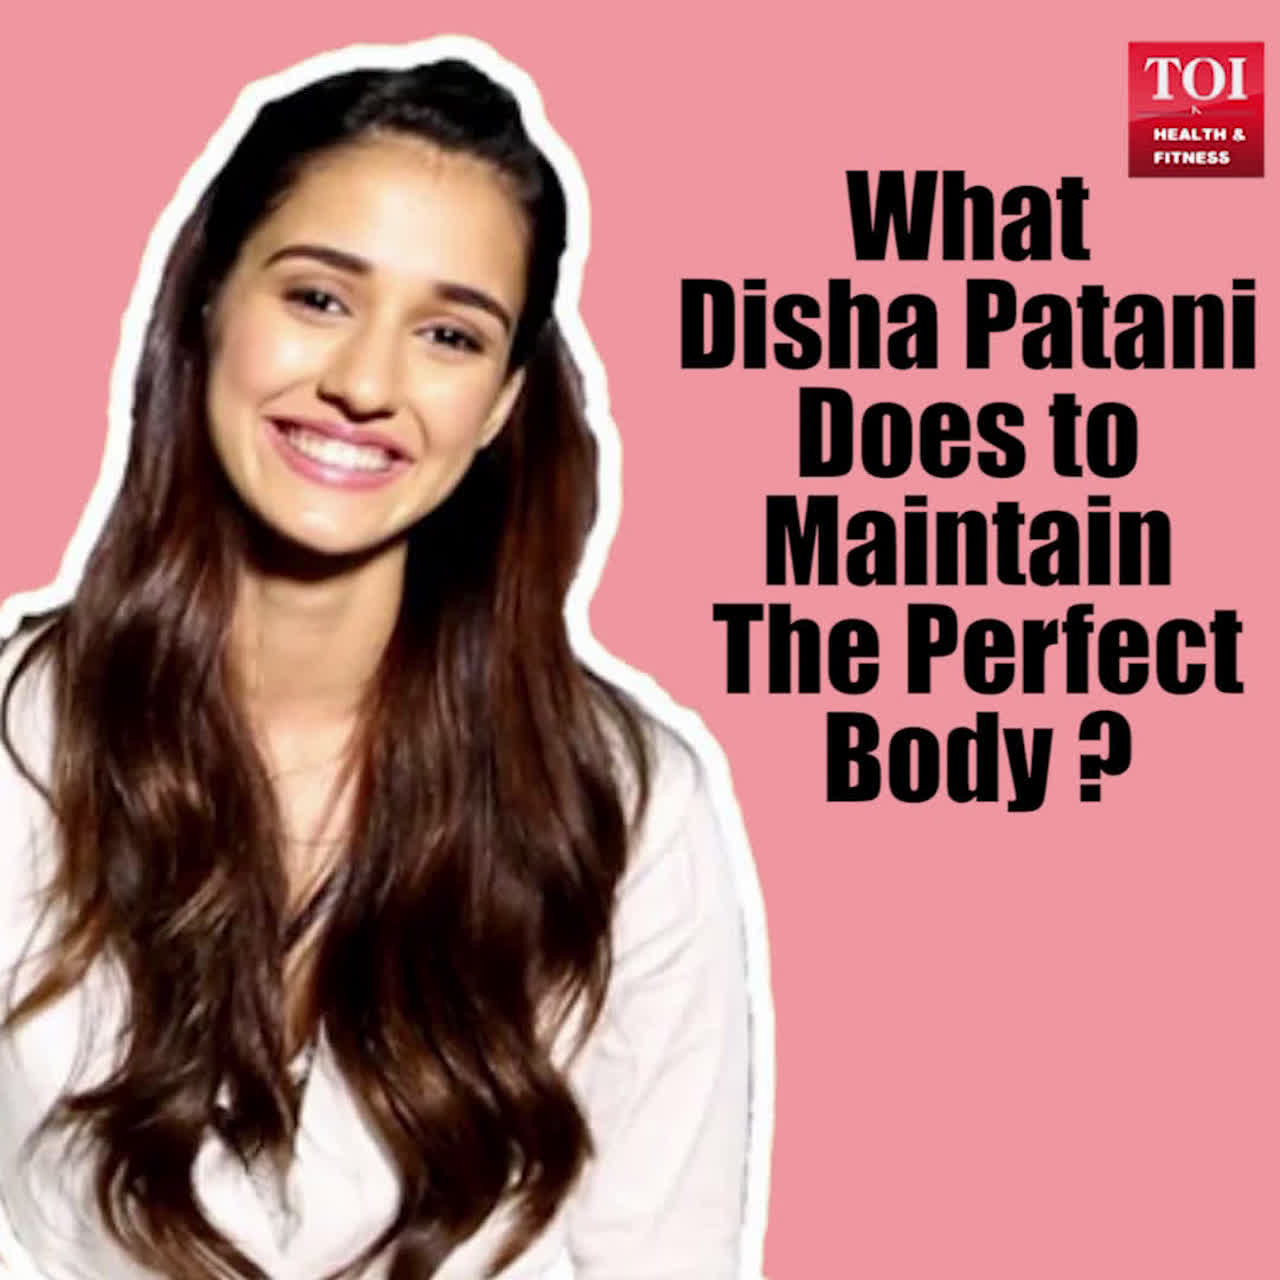 What Disha Patani does to maintain her perfect body?